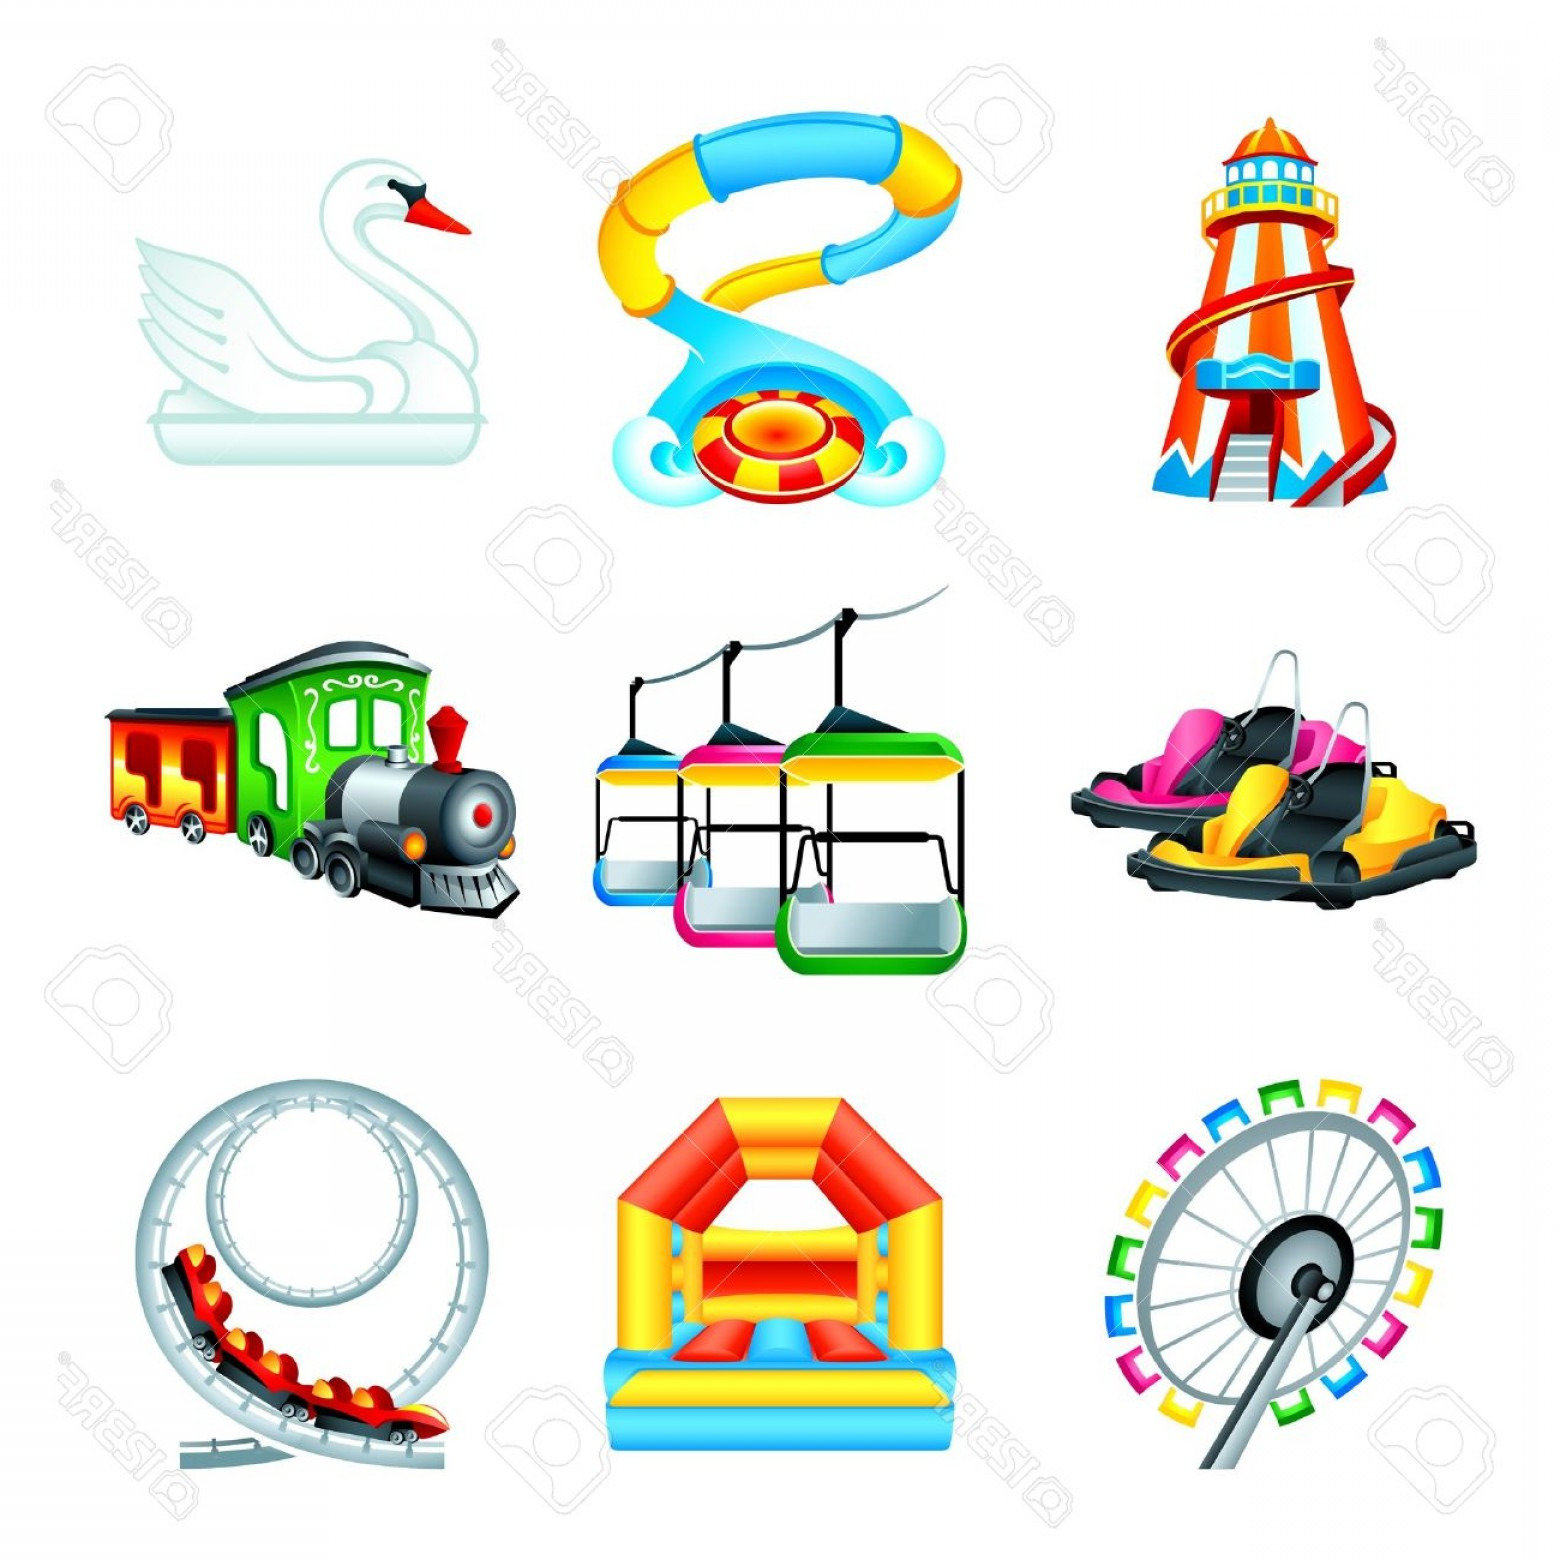 Attraction Icon Vector: Photocolorful Amusement Park Or Funfair Attraction Icons